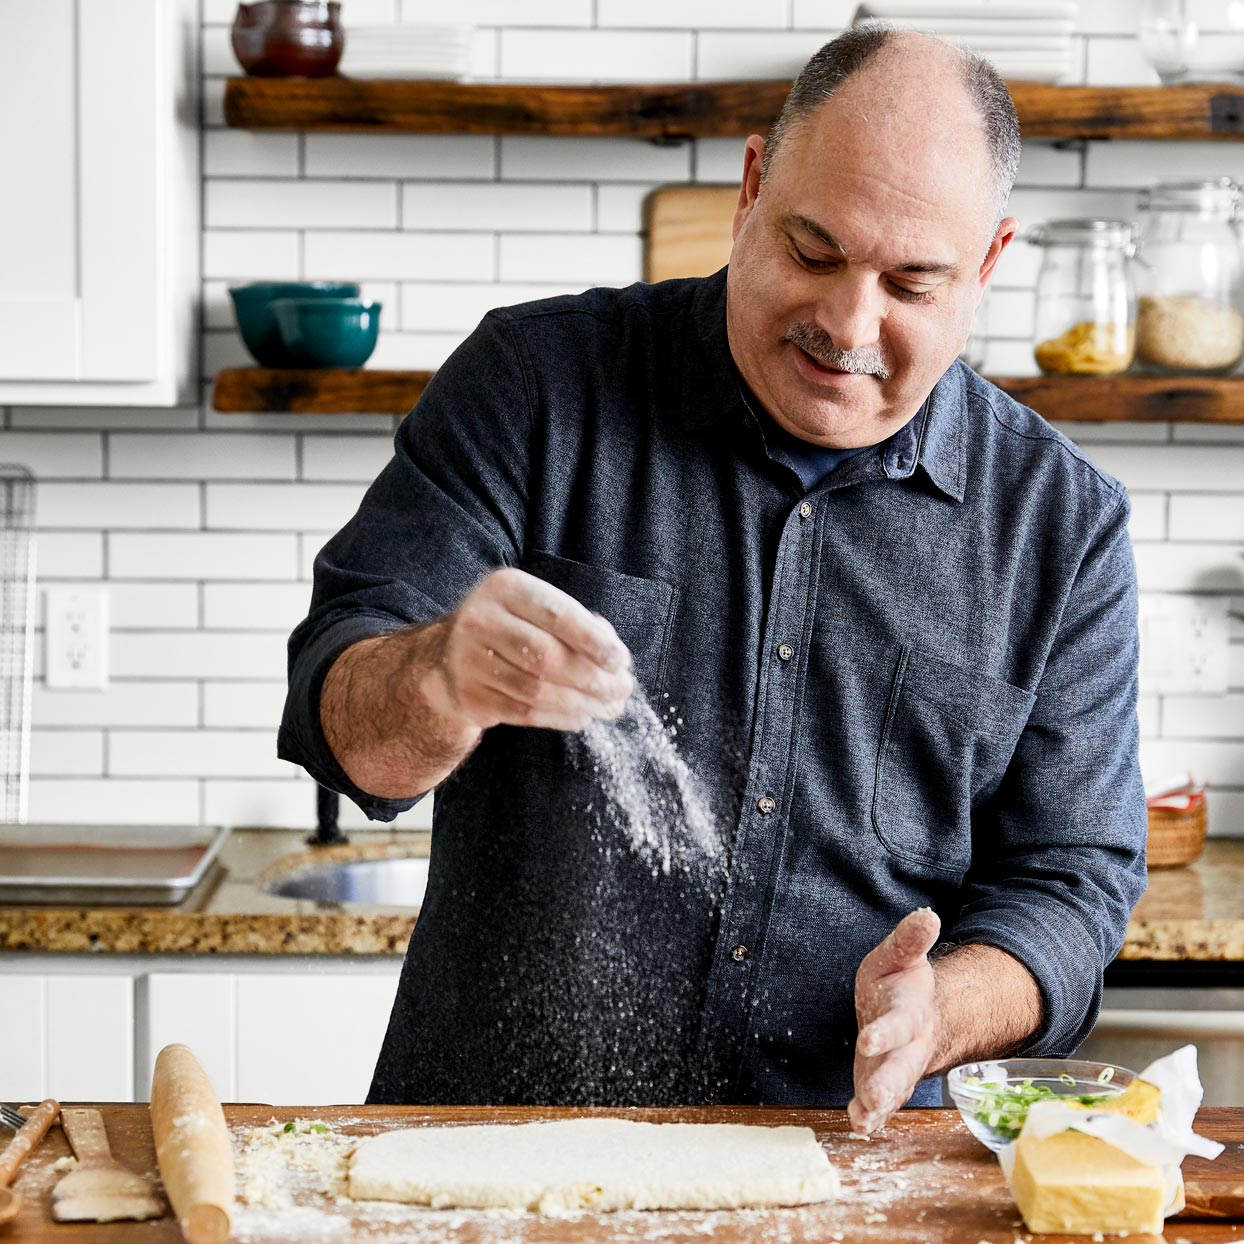 Get To Know Allrecipes Own Chef John Allrecipes